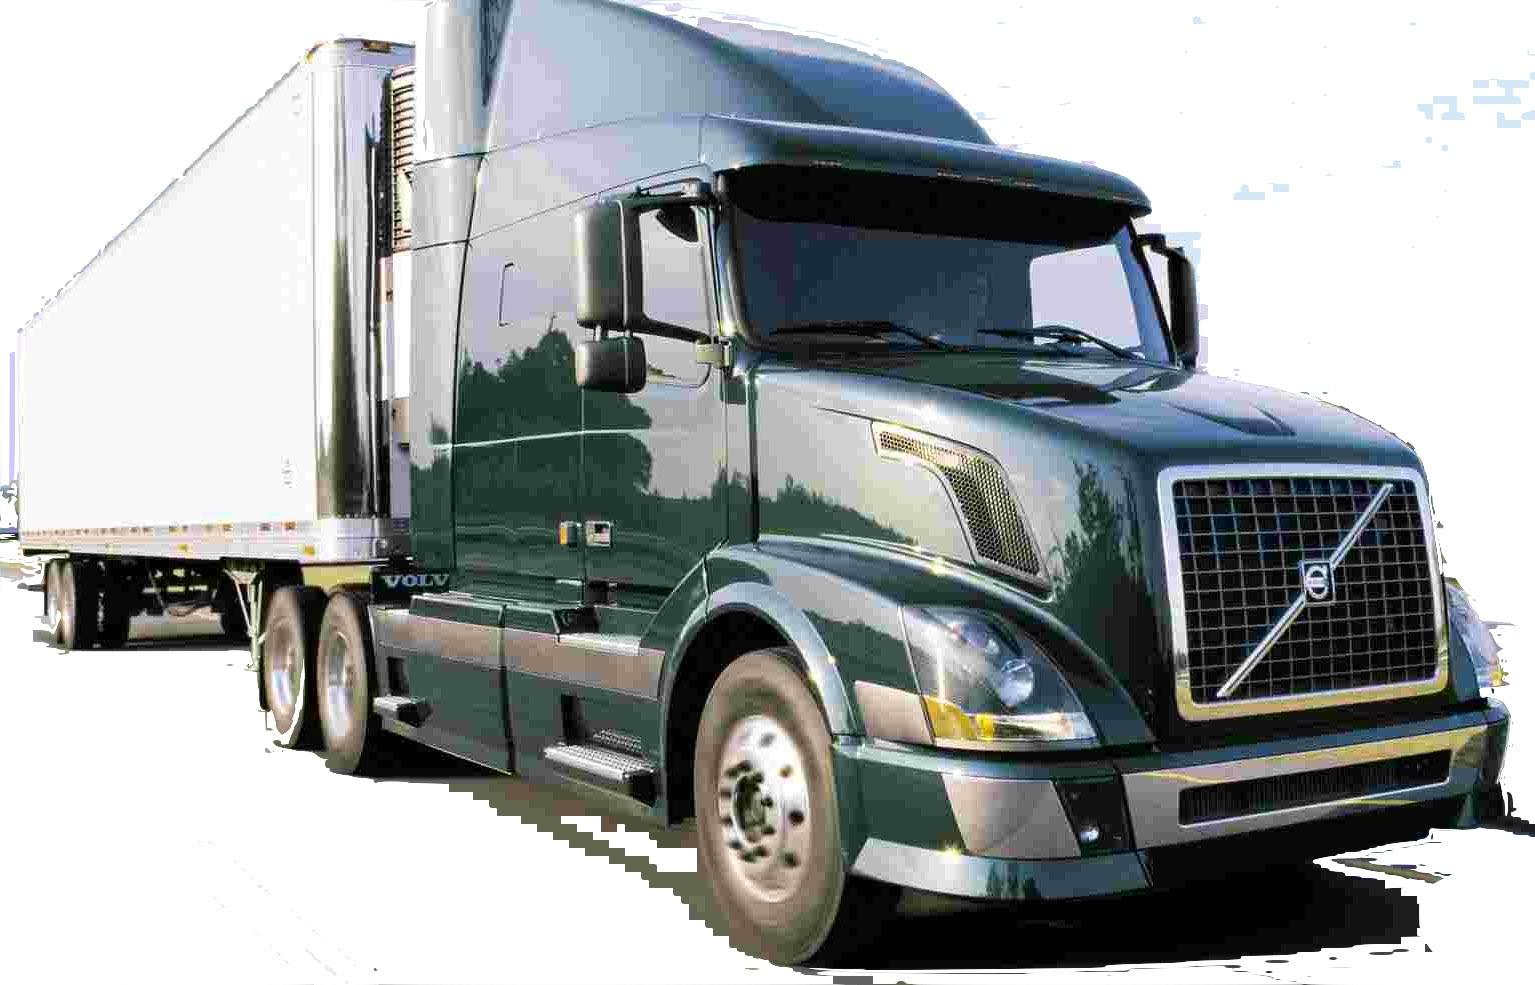 volvo trucks electrical wiring diagrams & others manuals | a++ repair manual  store  a++ repair manual store